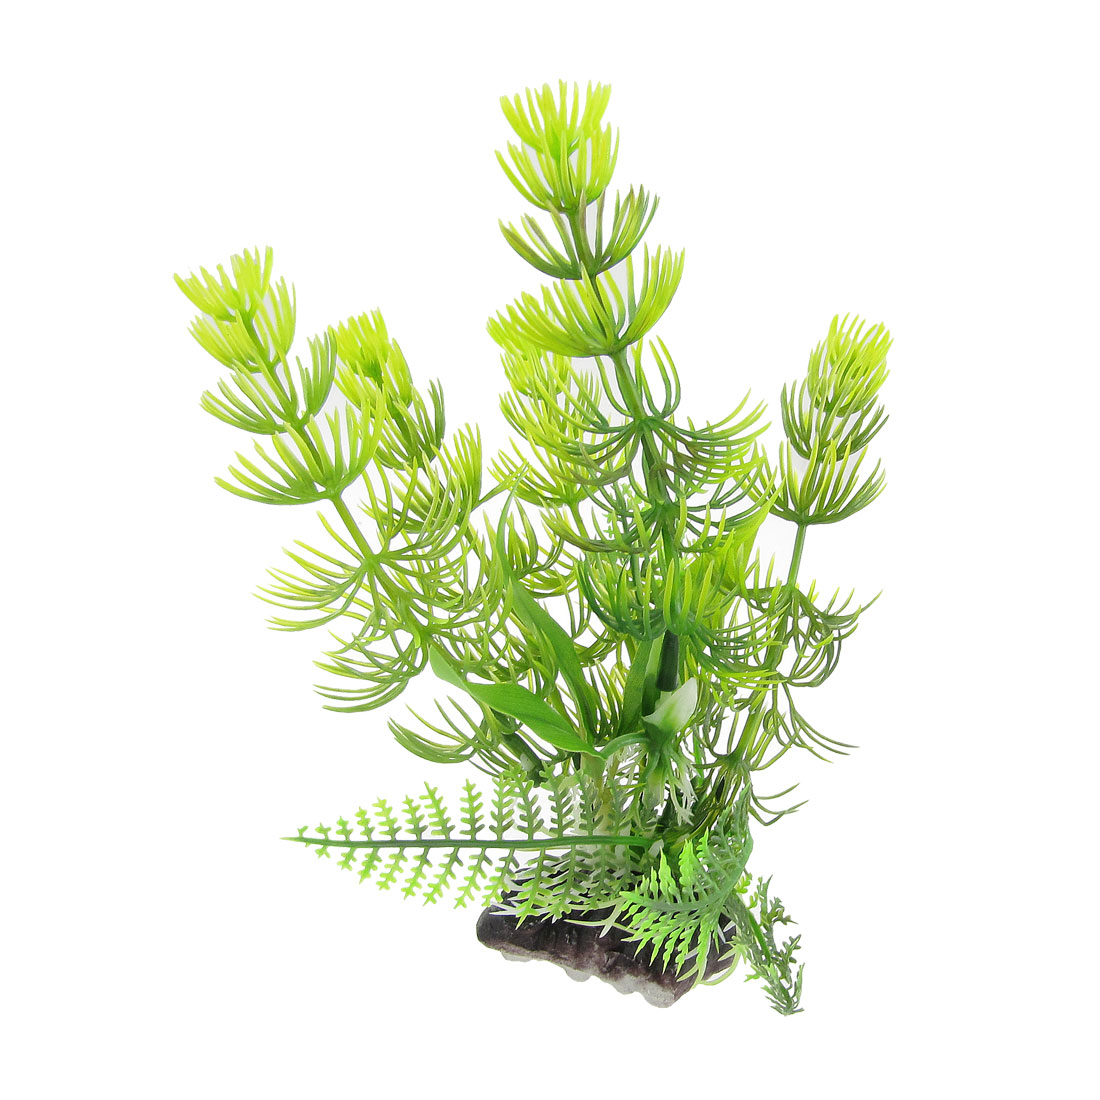 Fish Tank Perforated Base Yellow Green Leaves Aquascaping Plastic Plant 6.7""